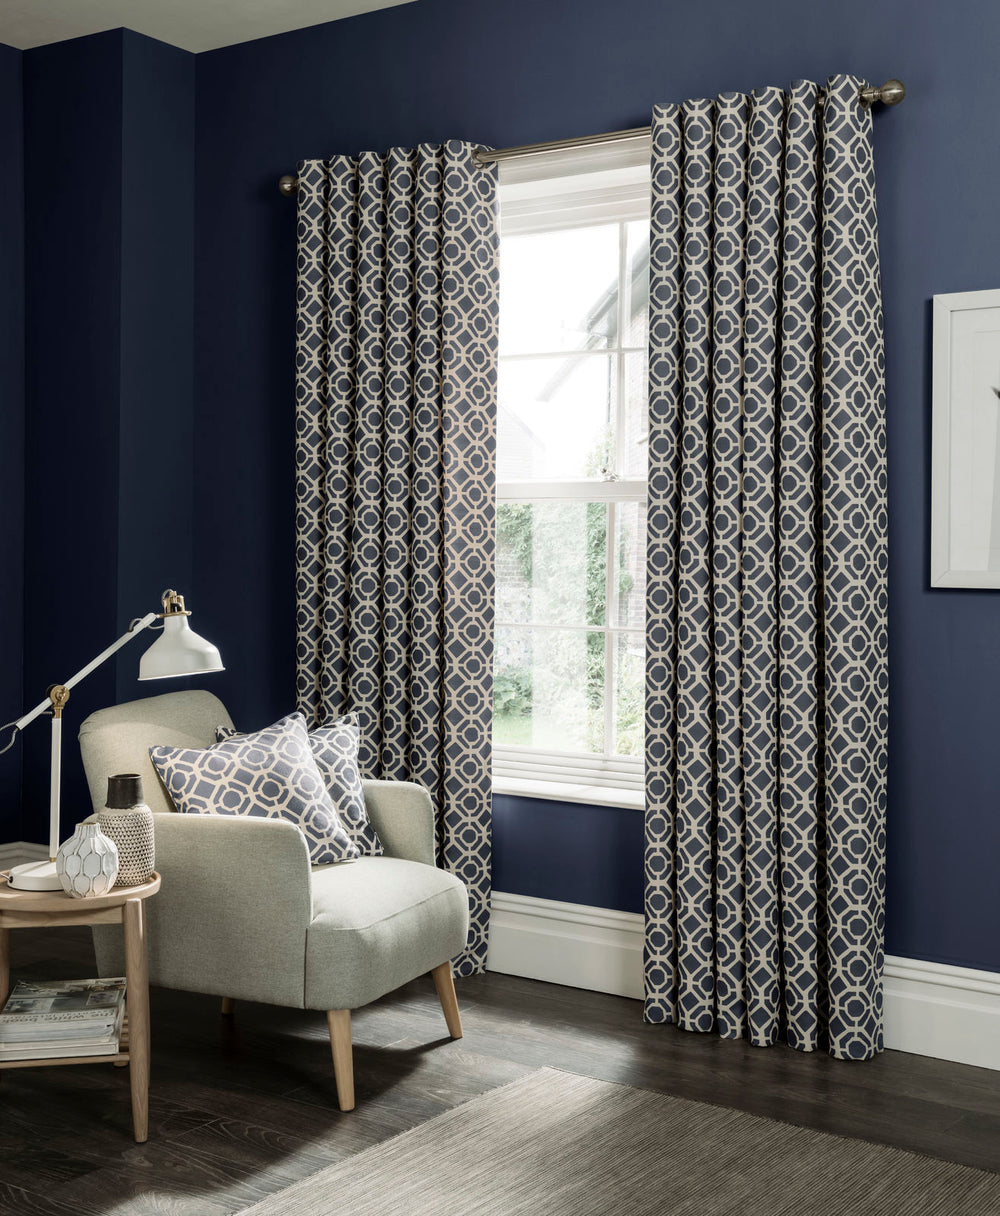 'Castello' Geometric Designer ready made eyelet Curtains in Indigo - Your 4 Walls